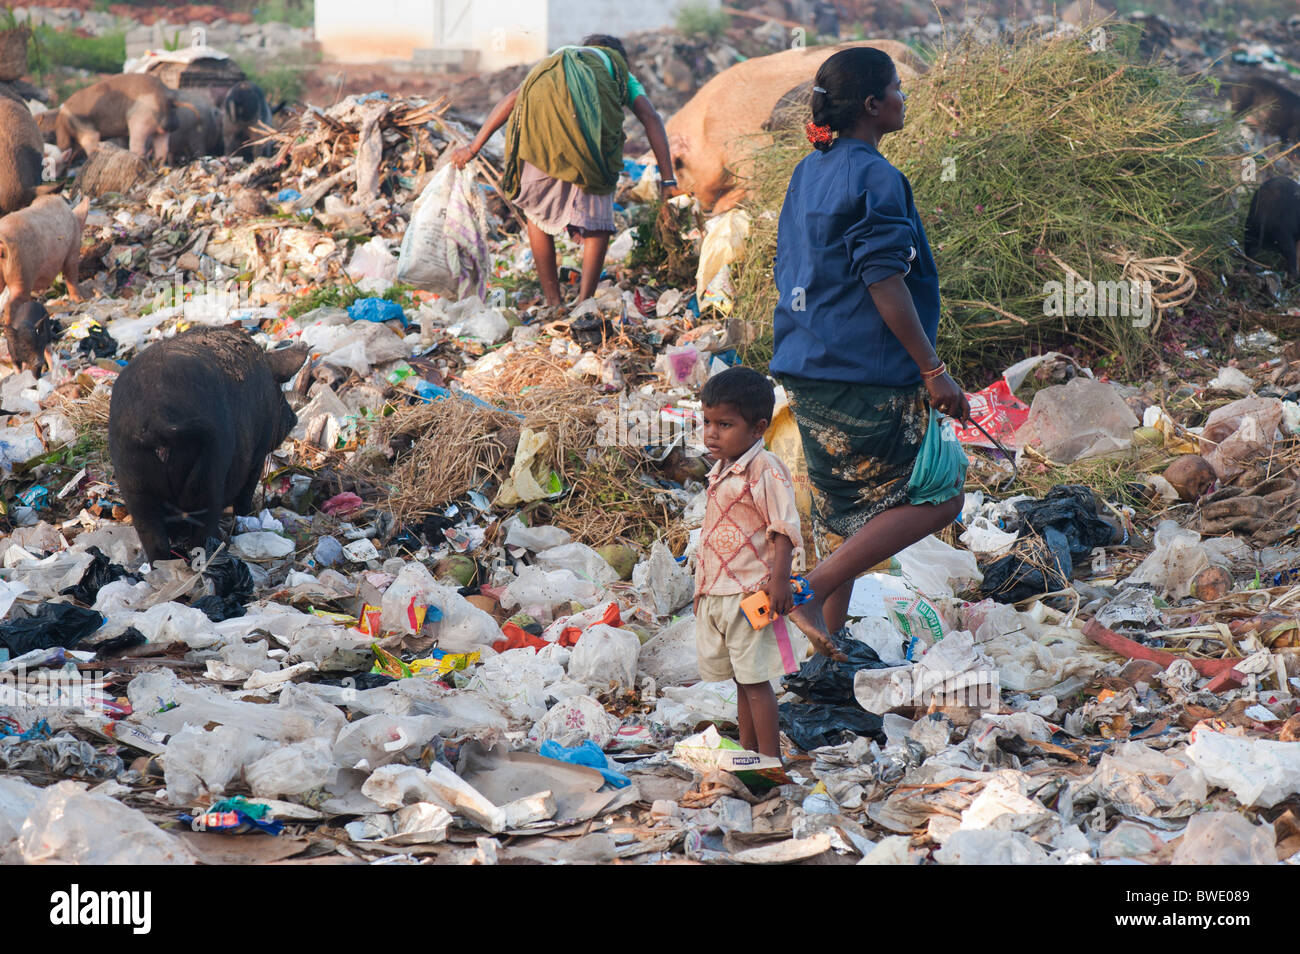 Poor Indian woman and child collecting pickings from a rubbish tip surrounded by pigs. Andhra Pradesh, India - Stock Image